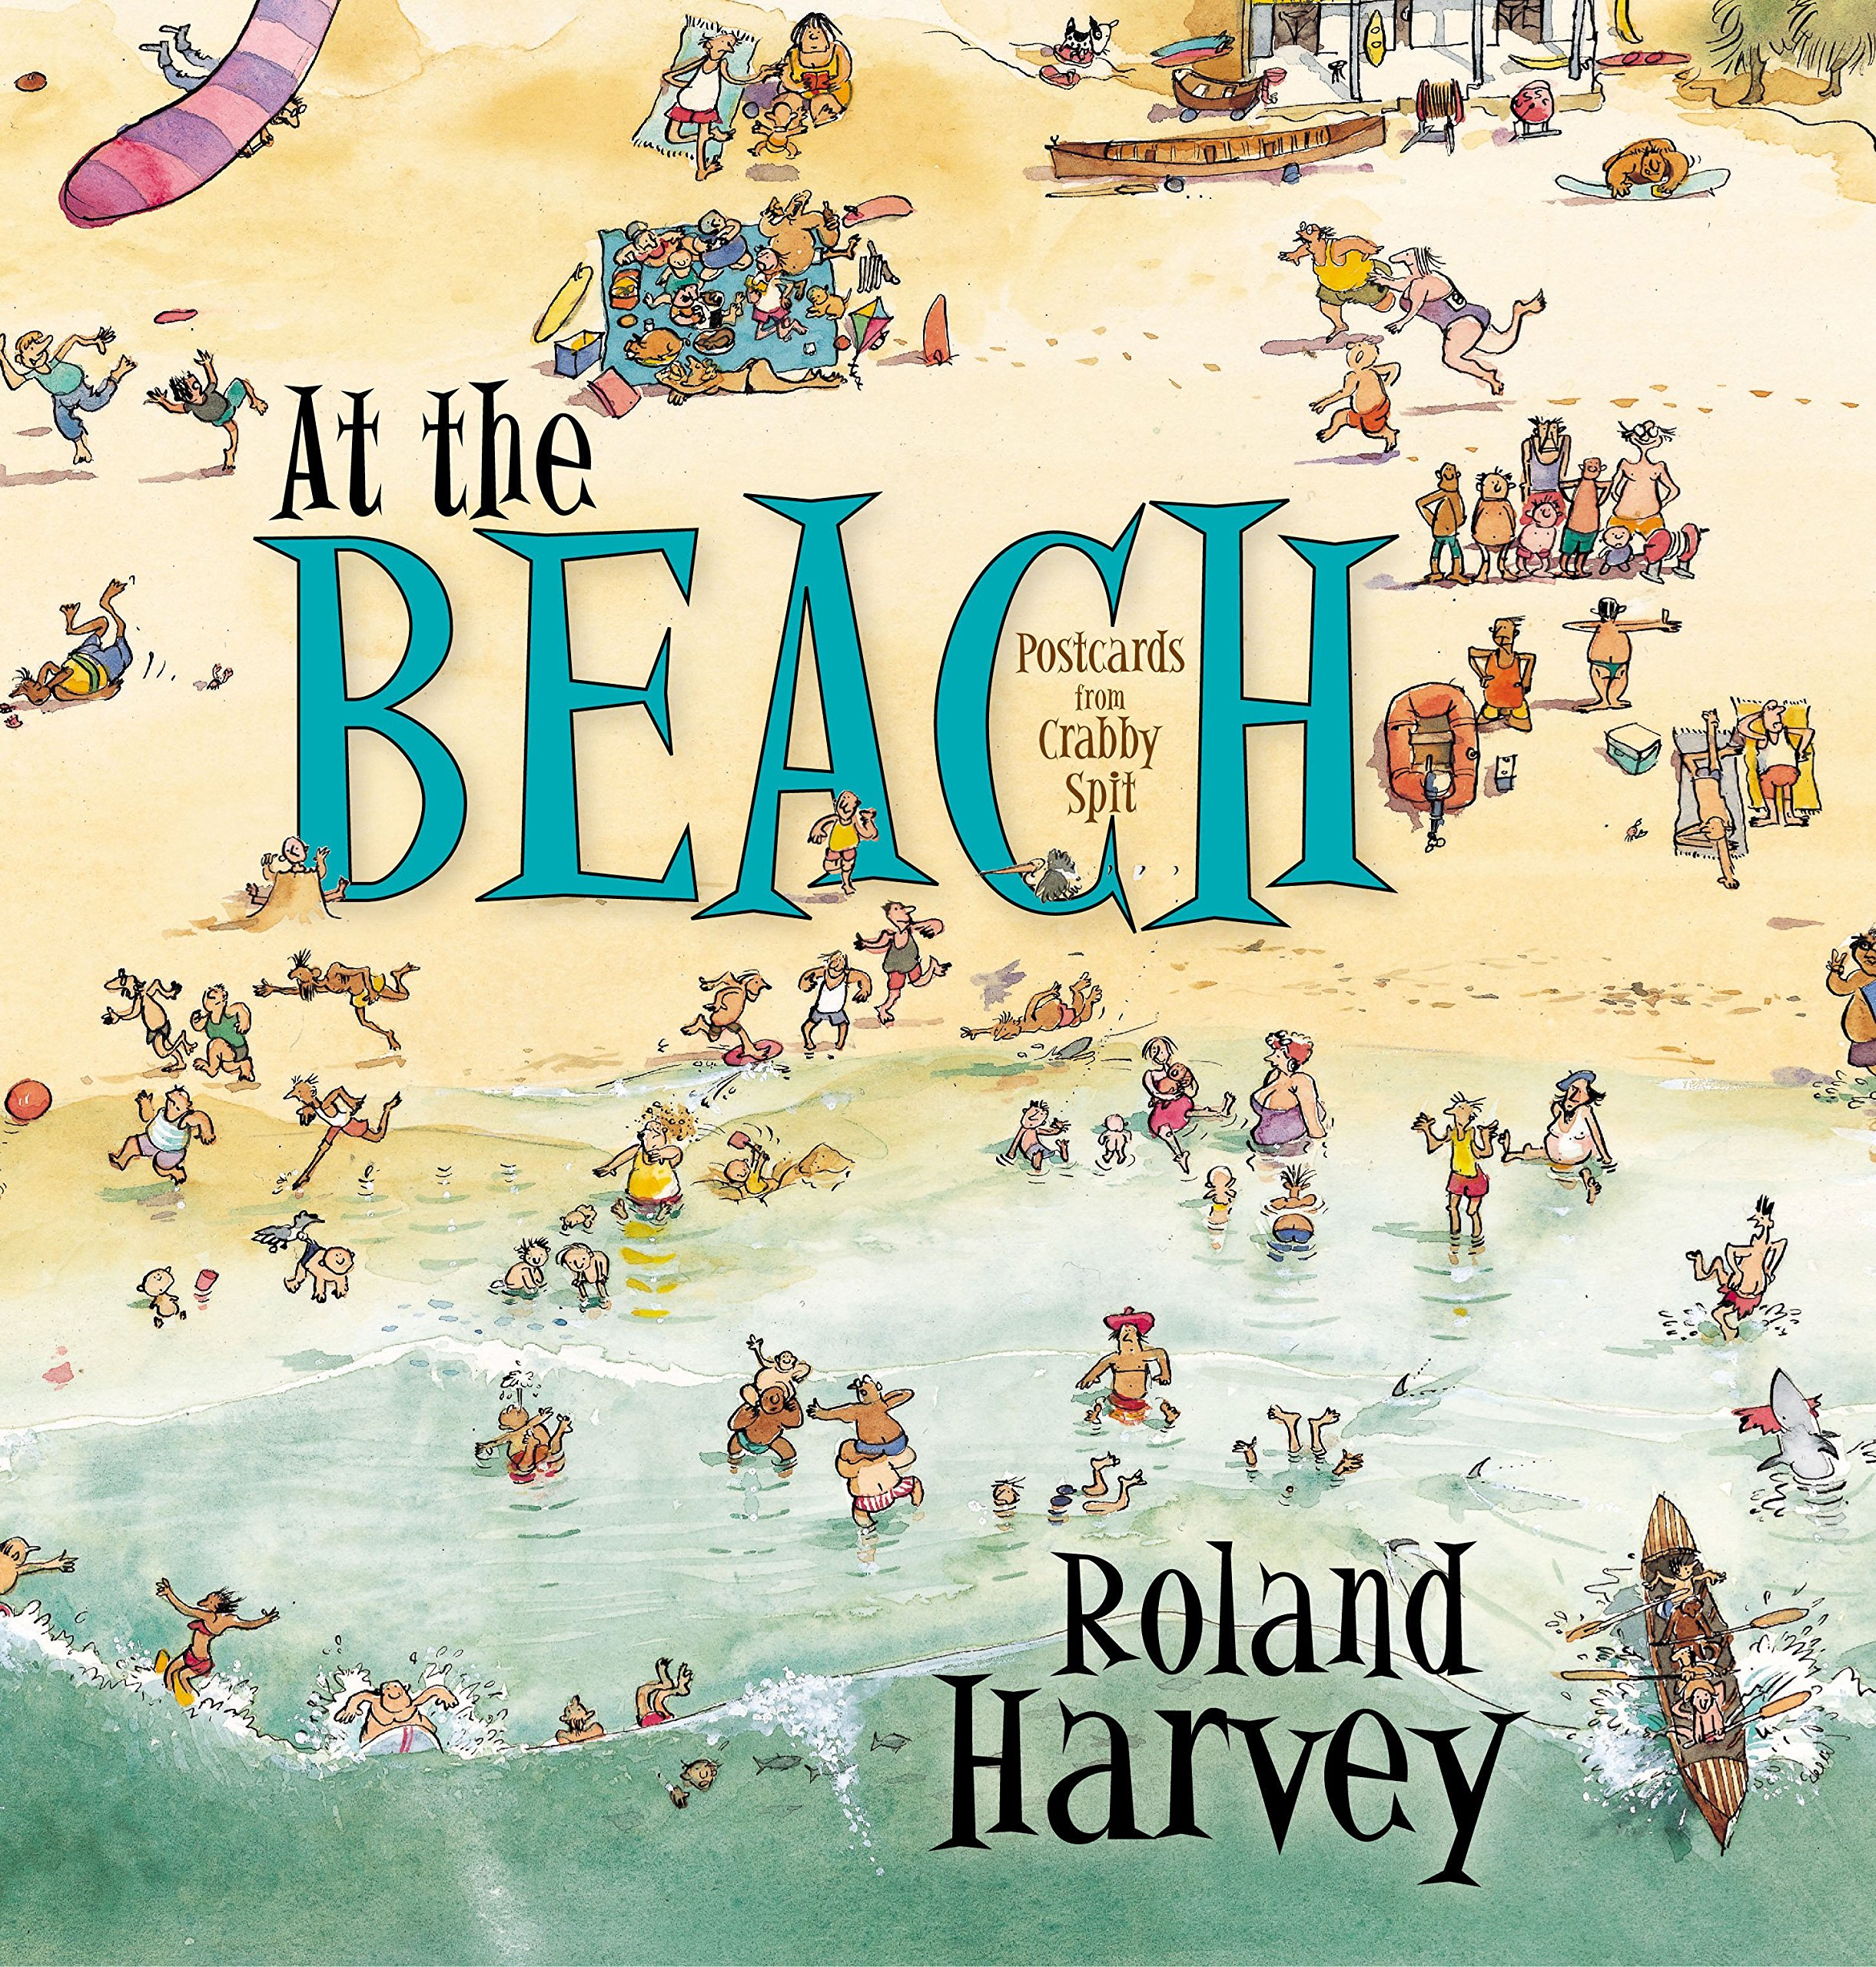 Image result for at the beach roland harvey